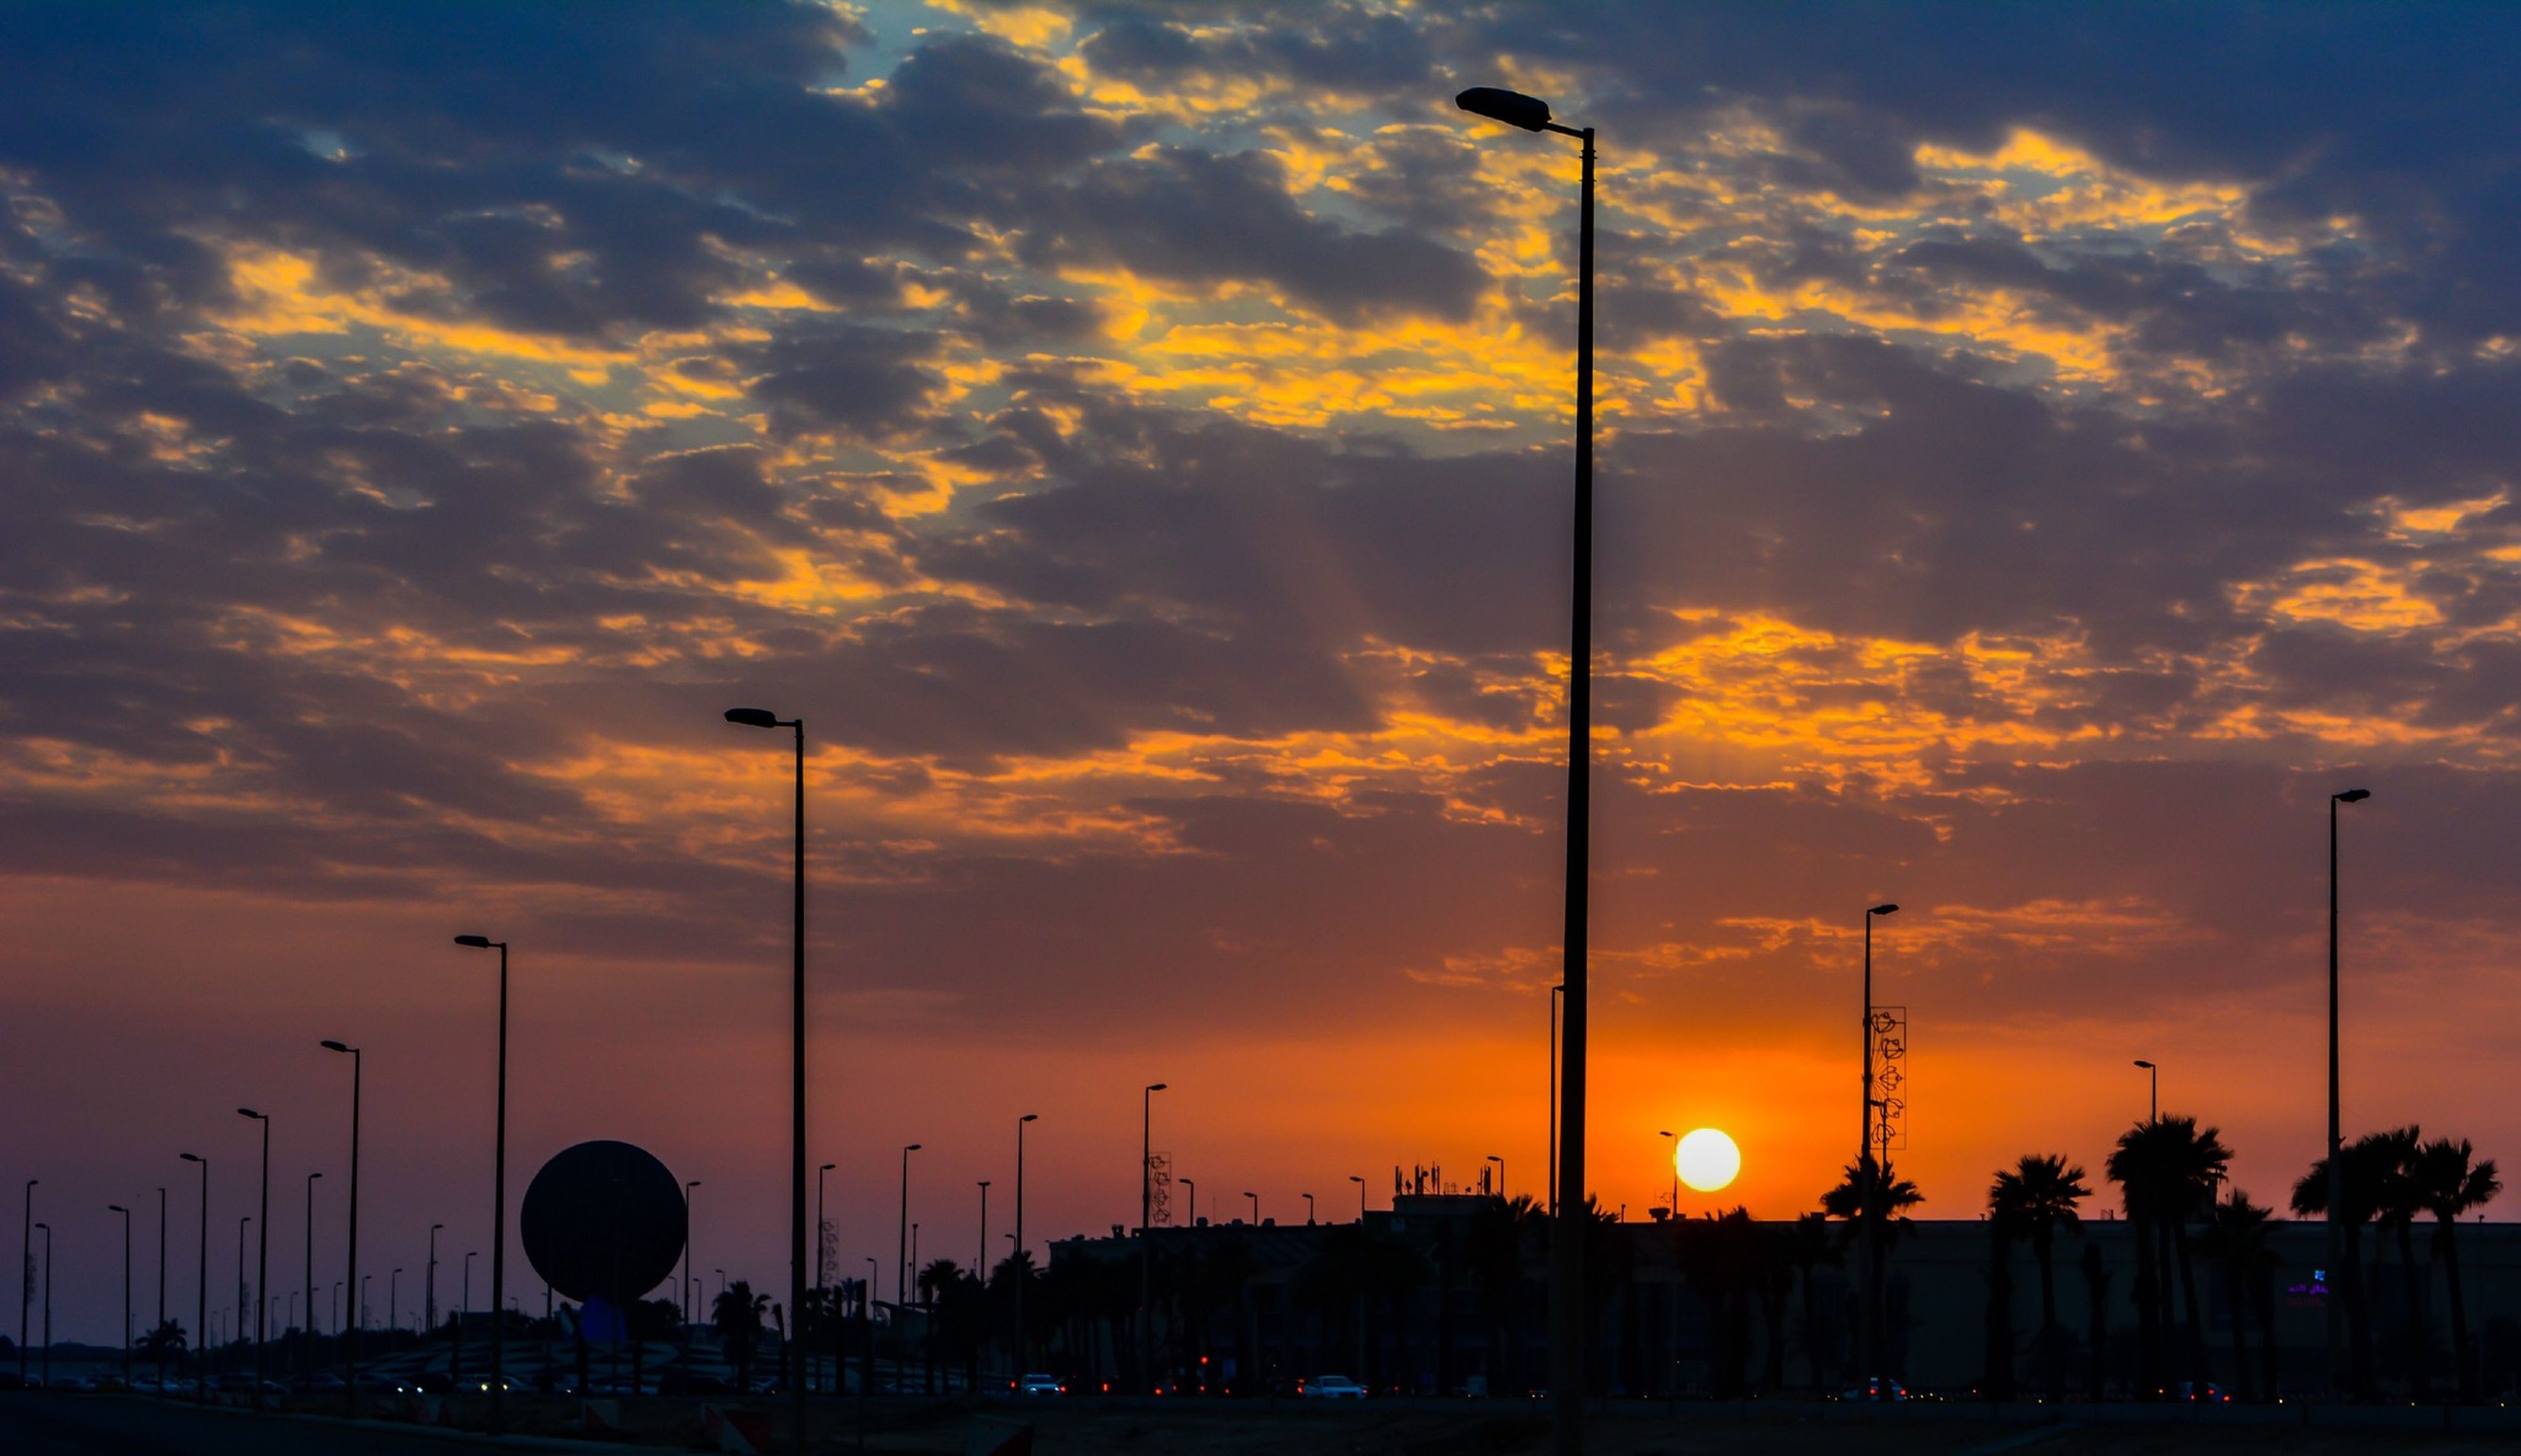 sunset, street light, sky, silhouette, orange color, cloud - sky, transportation, lighting equipment, beauty in nature, in a row, car, scenics, nature, dramatic sky, cloud, cloudy, tranquility, low angle view, tree, illuminated